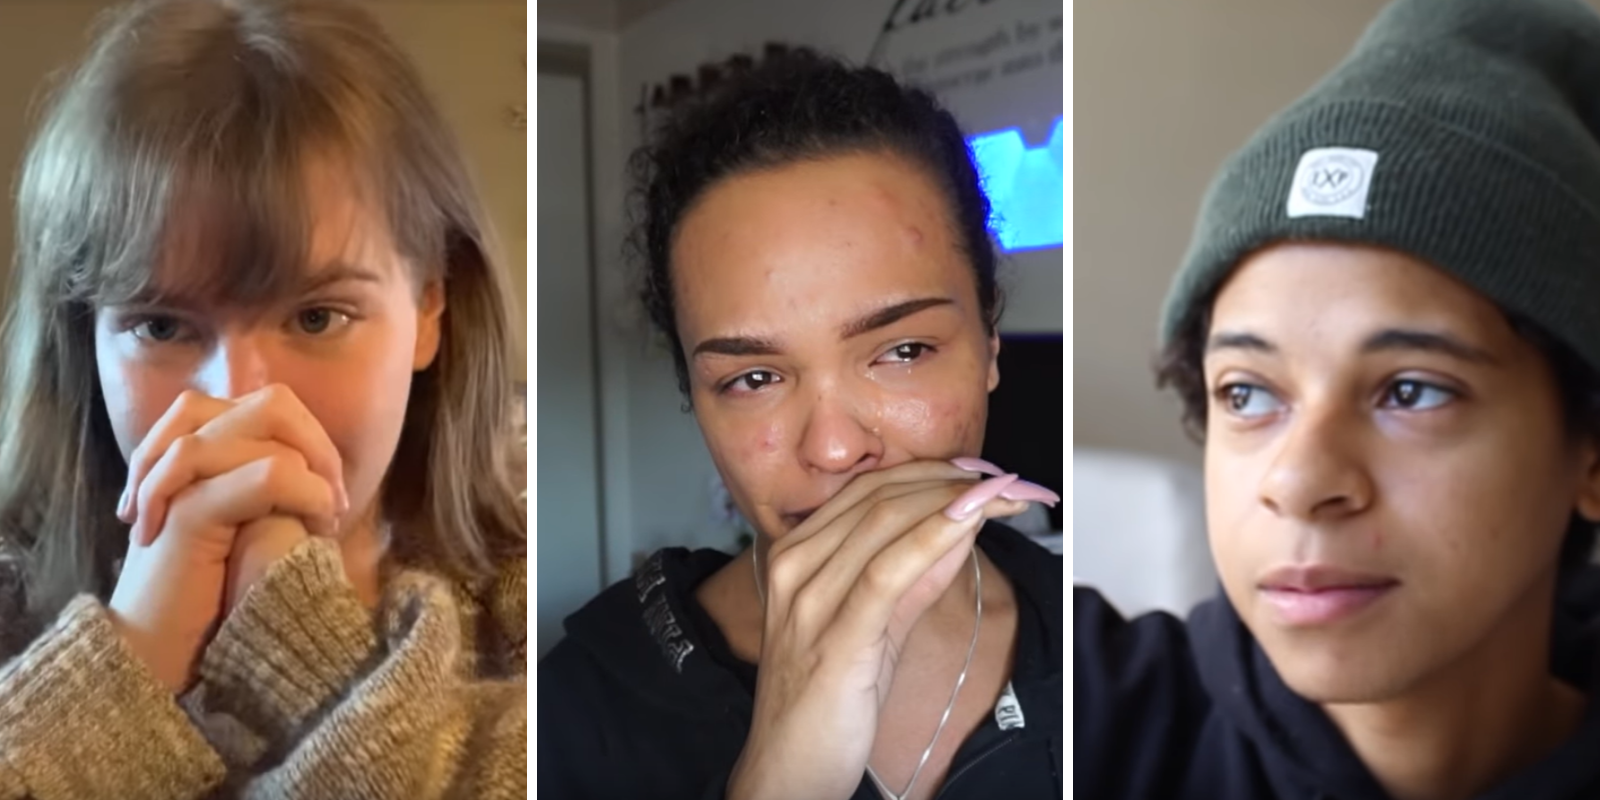 Many young adults are turning to vlogging their detransition experiences and stories on YouTube.